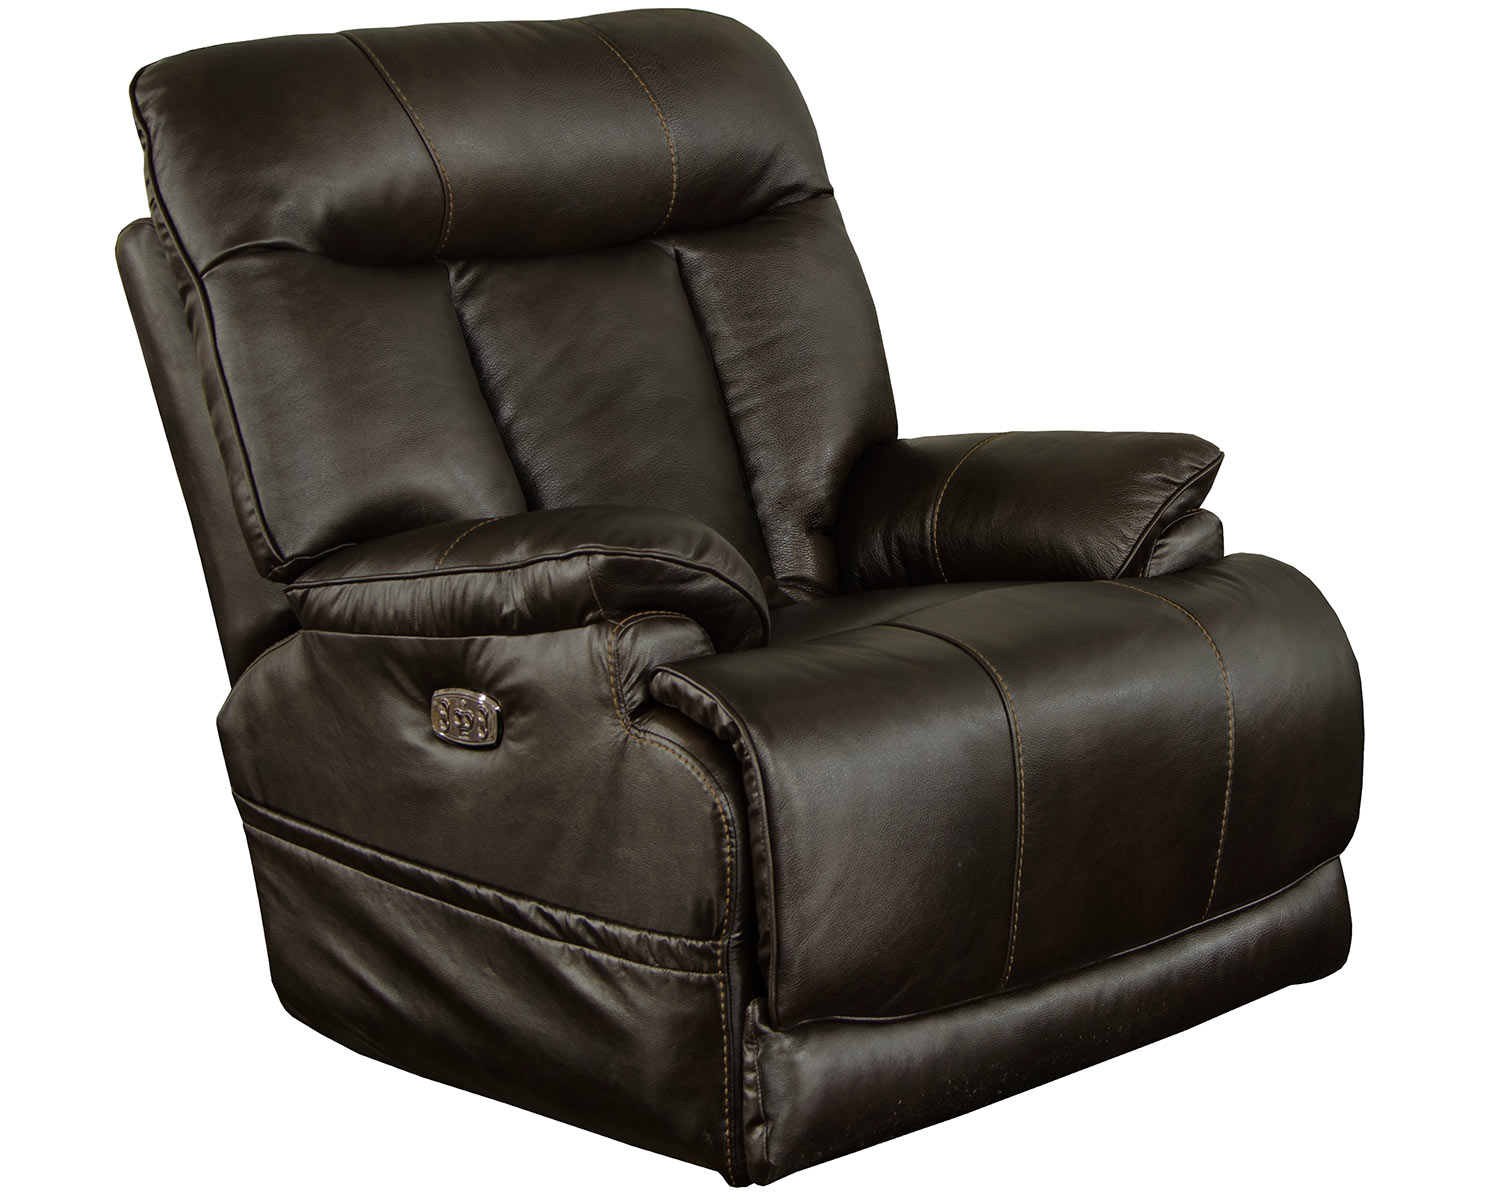 CatNapper Naples Leather Power Recliner Chair - Chocolate